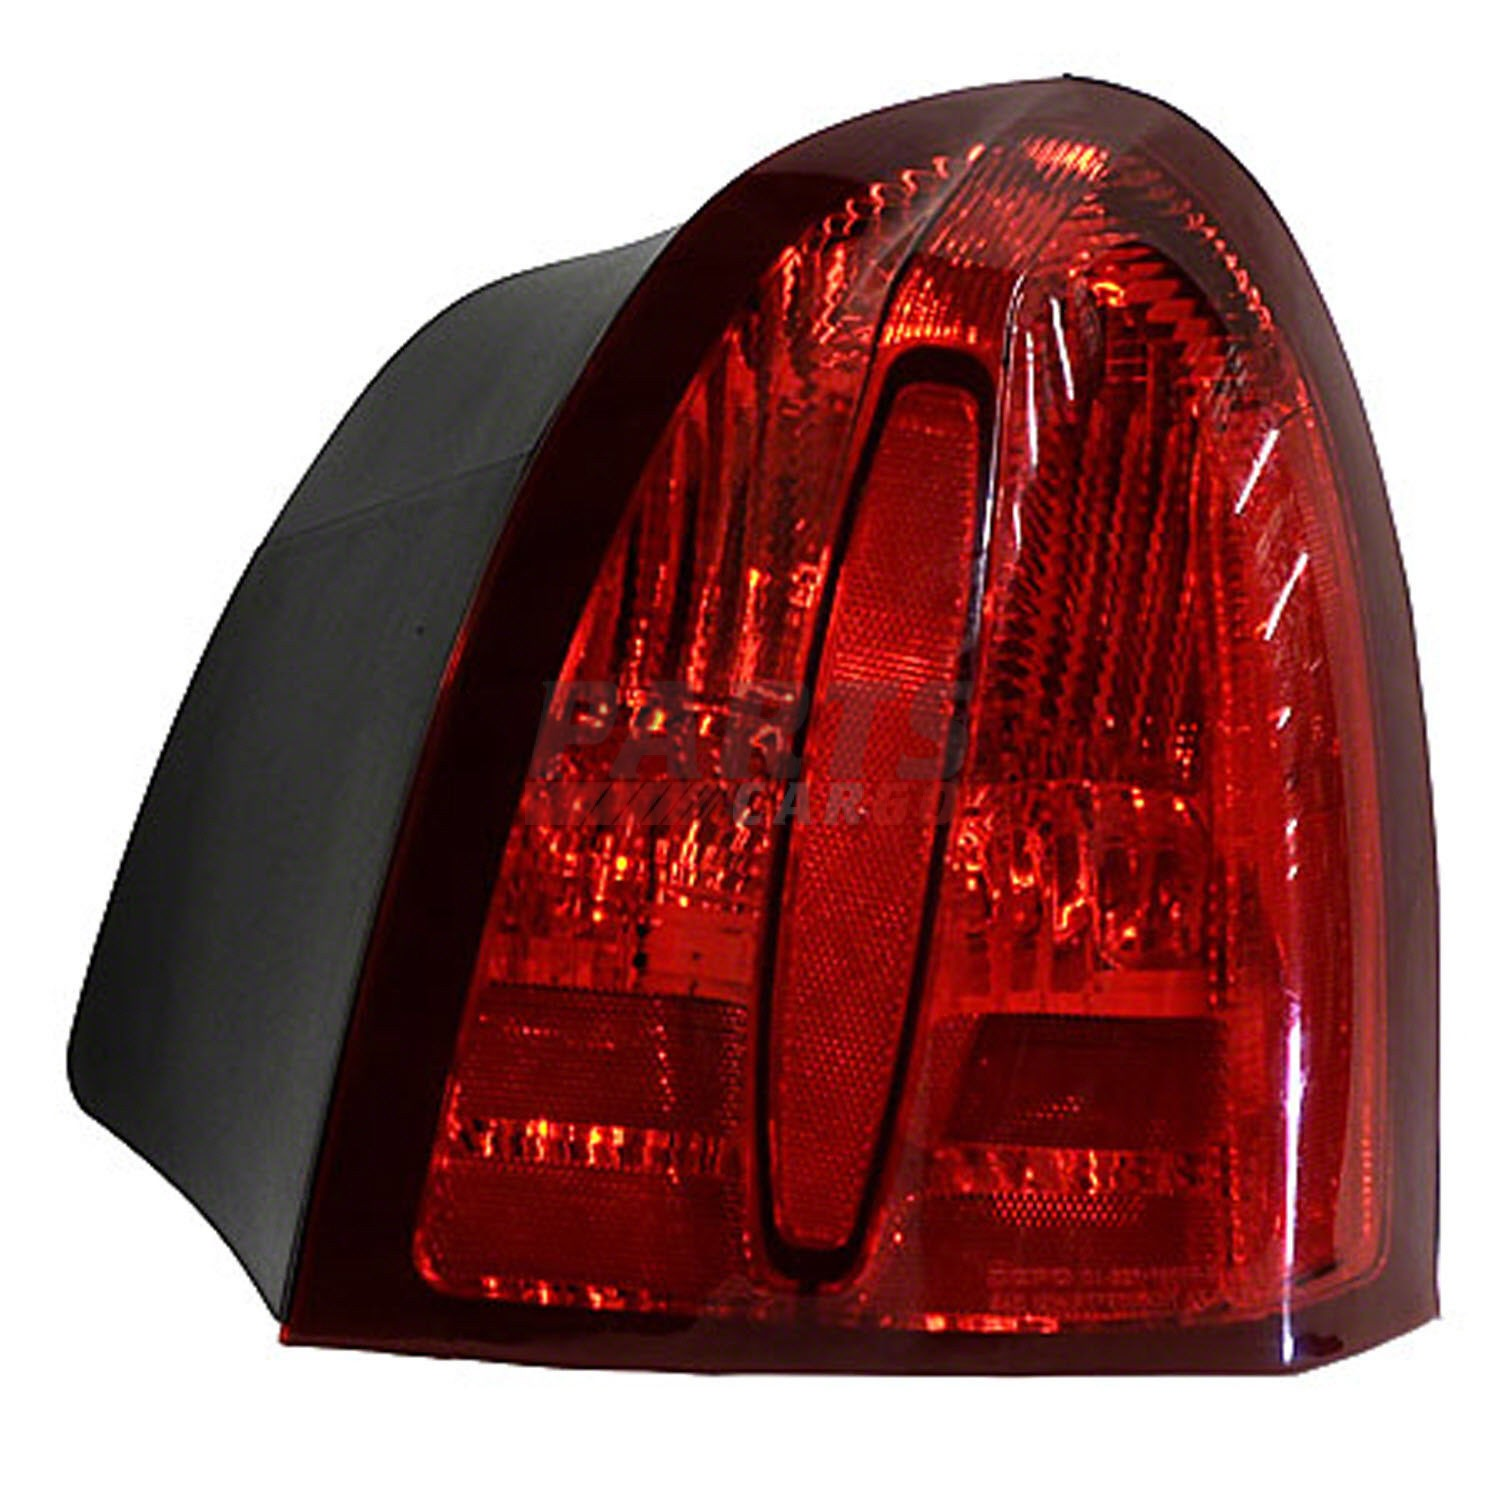 details about new tail light assembly right side fits 1998 2002 lincoln town car xw1z13404ba [ 1500 x 1500 Pixel ]